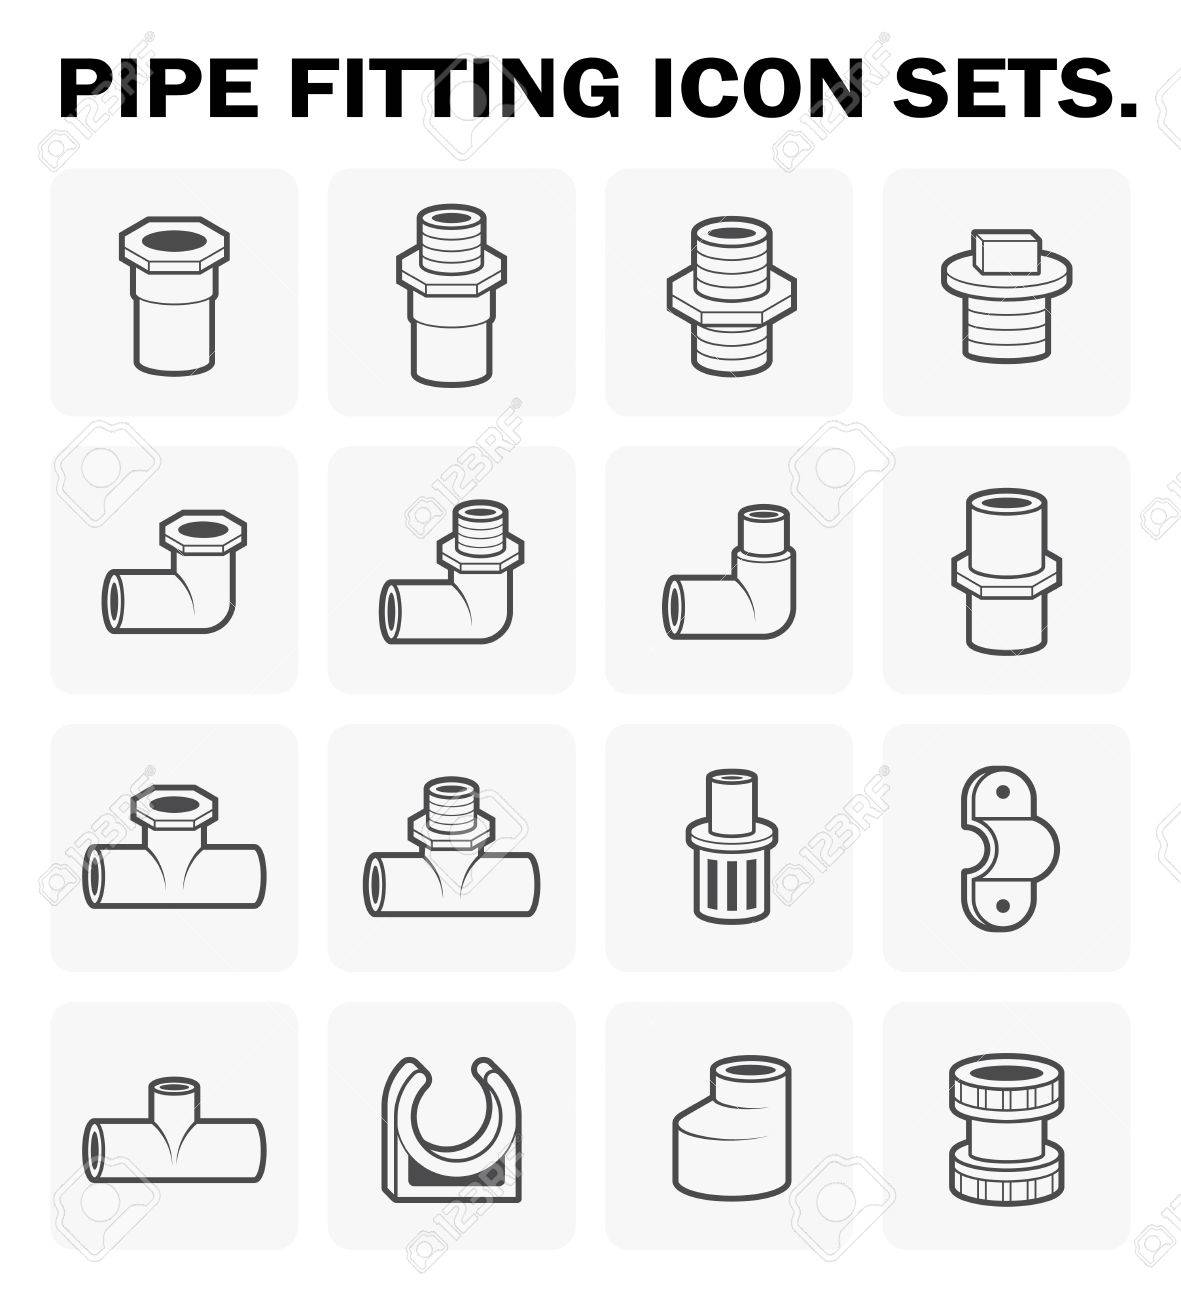 Pipe fitting icon sets design. - 56410939